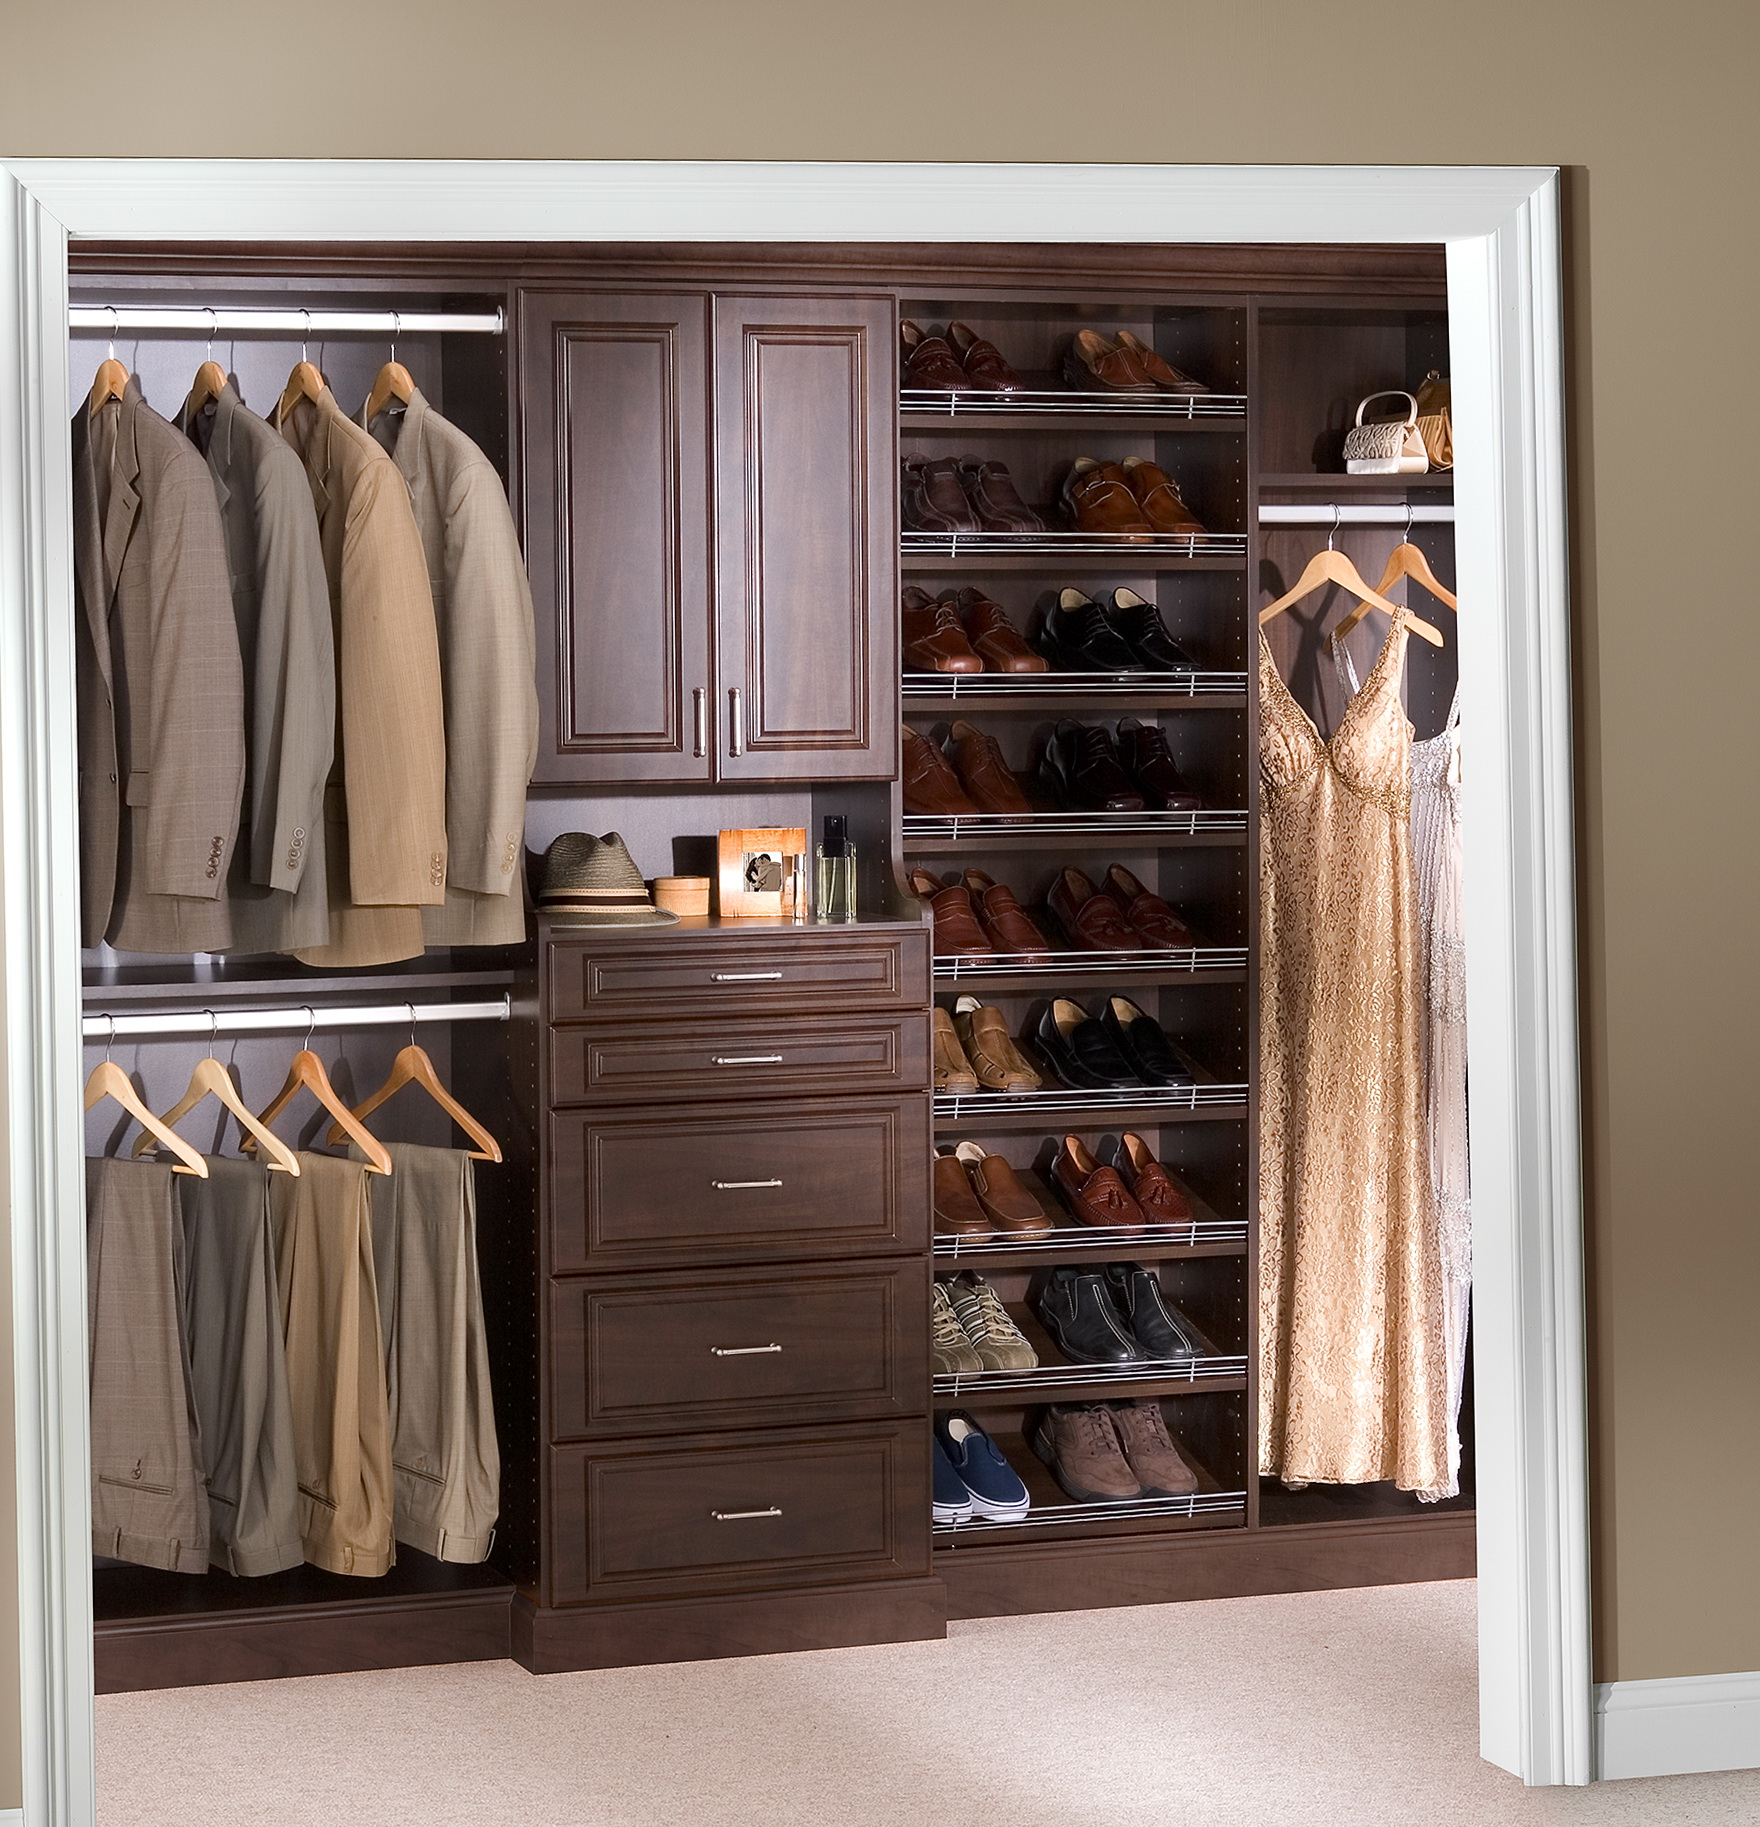 Small closet storage solutions home design ideas - Storage solutions for small closets ...